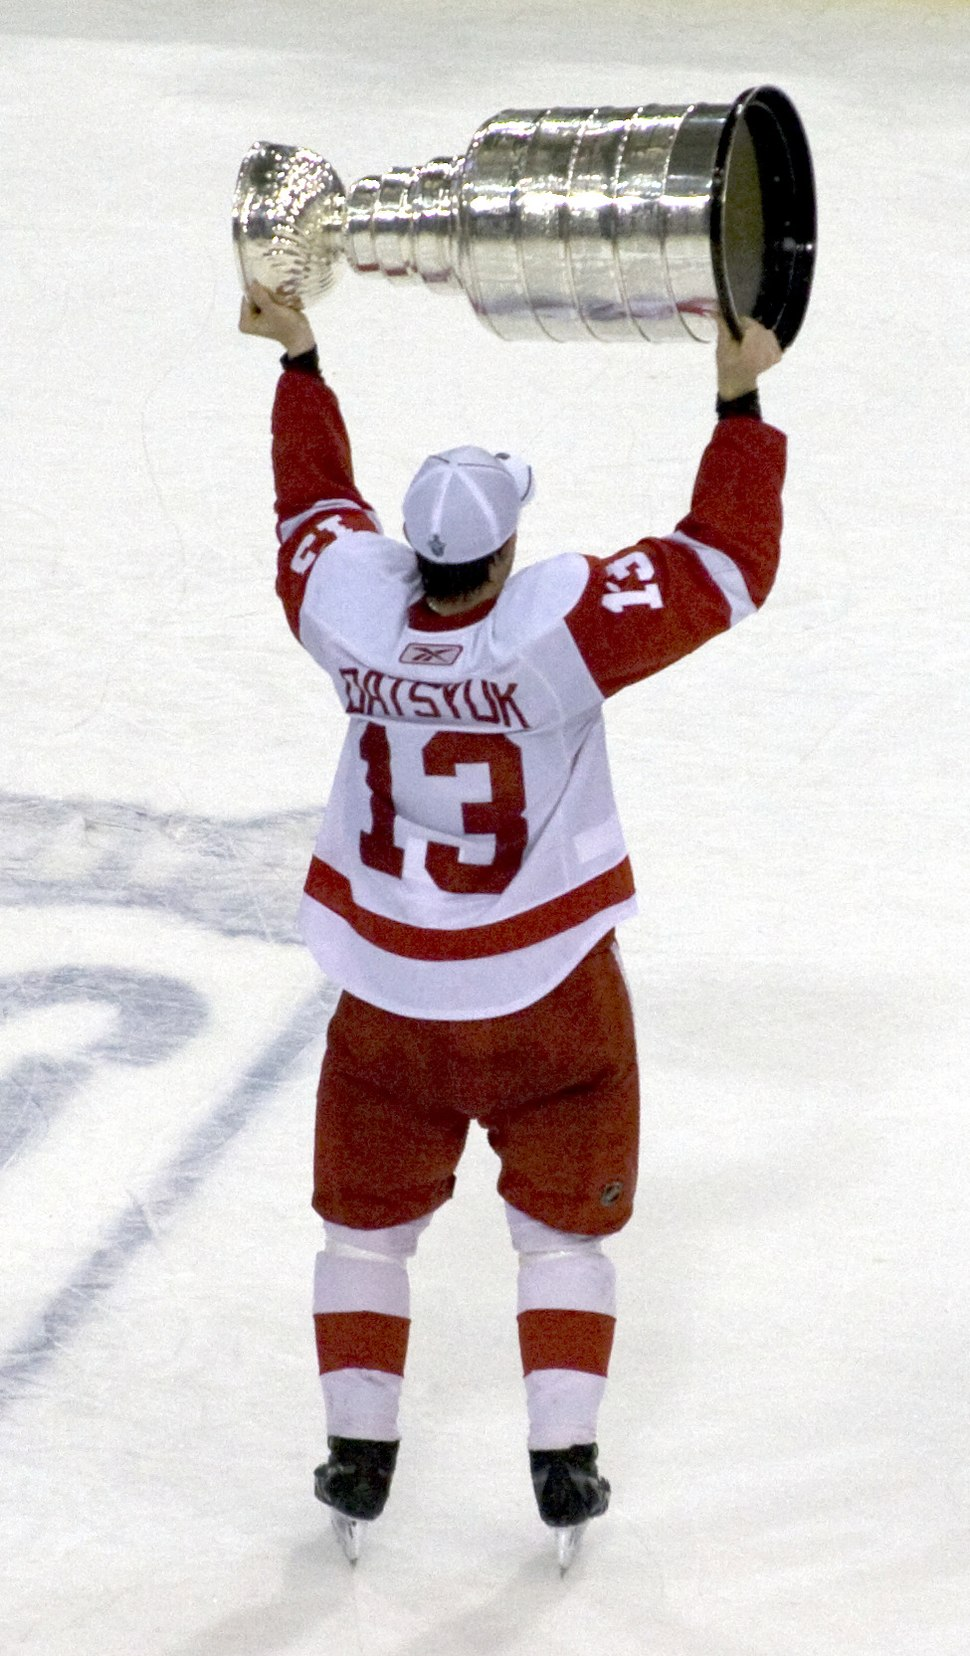 Pavel Datsyuk with Stanley Cup